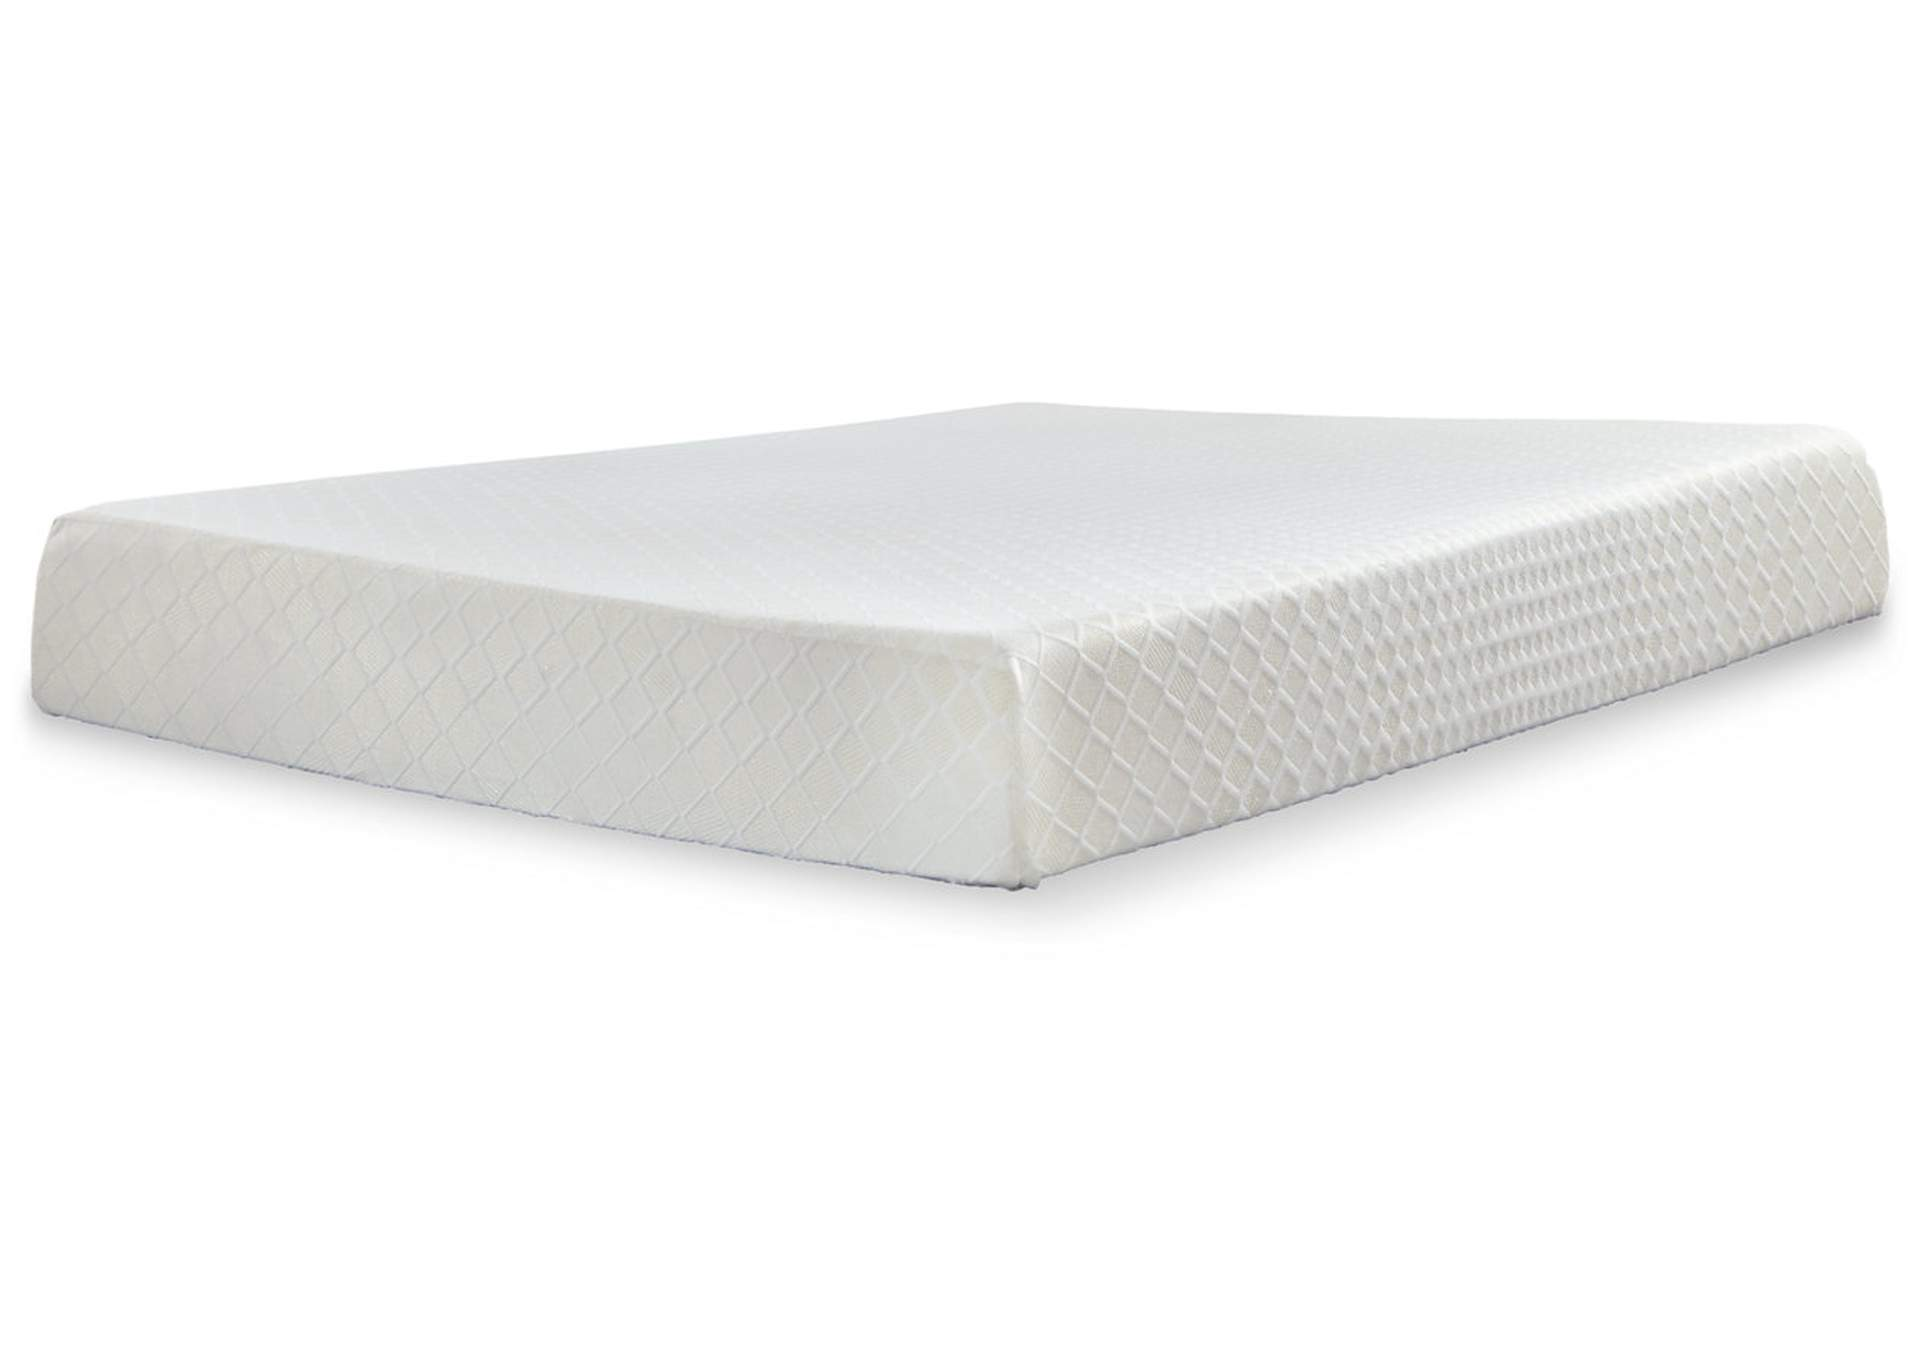 "Chime 10"" Memory Foam Queen Mattress,Sierra Sleep by Ashley"